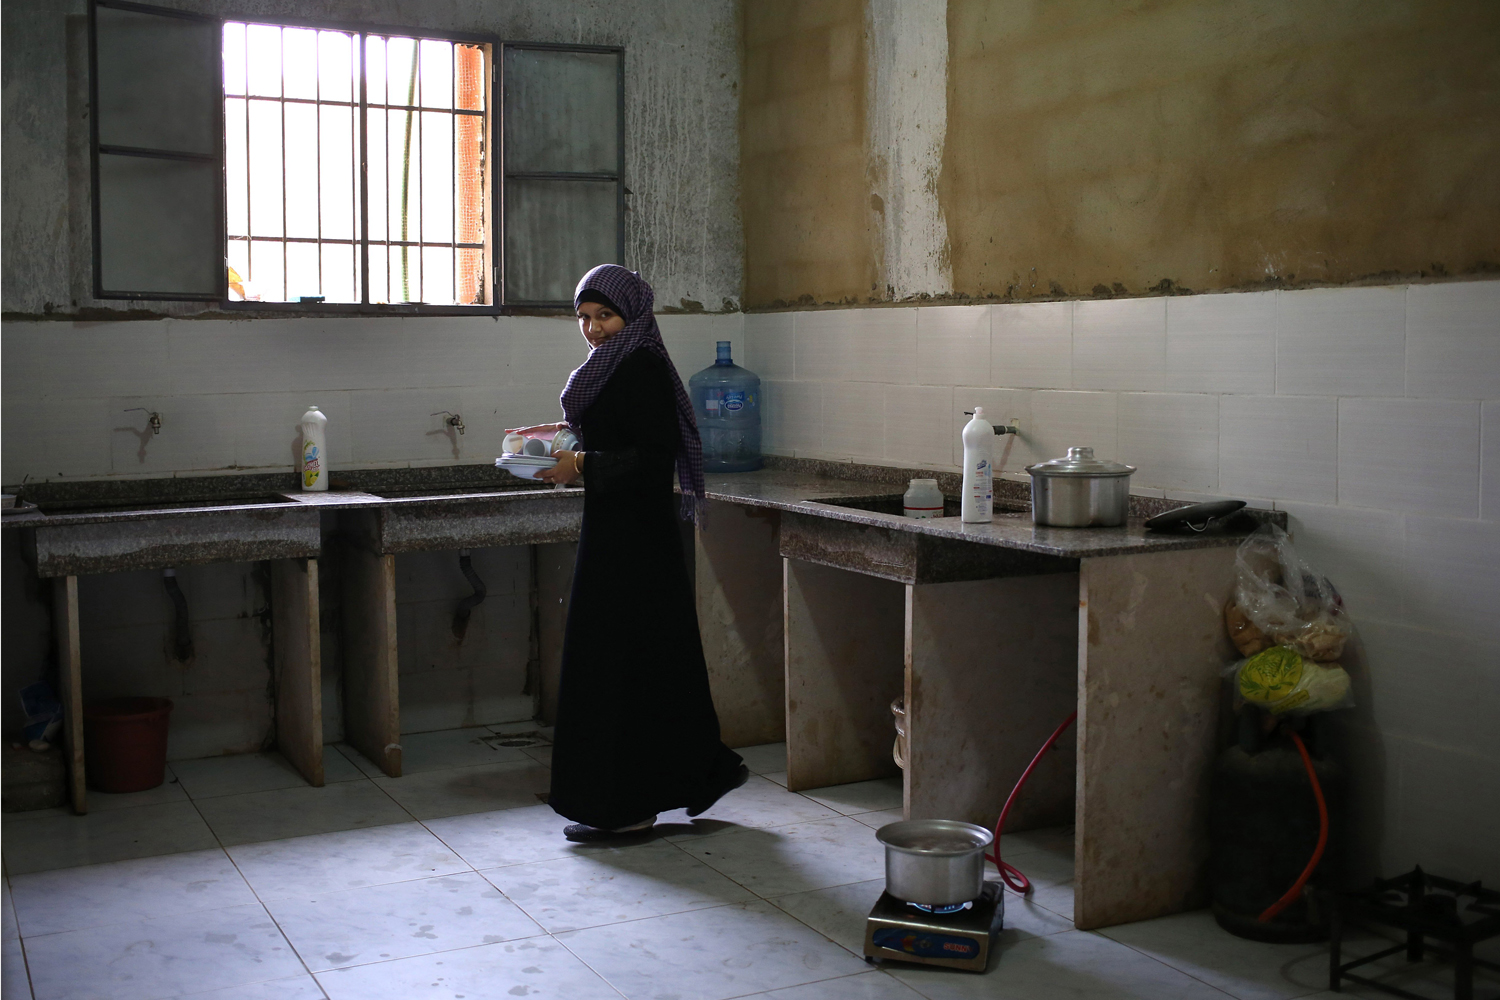 May 29, 2014. A Syrian refugee woman carries plates after she washed them in a shared kitchen in a collective center where many Syrian refugees live, in Kirbet Daoud village in Akkar, north Lebanon.